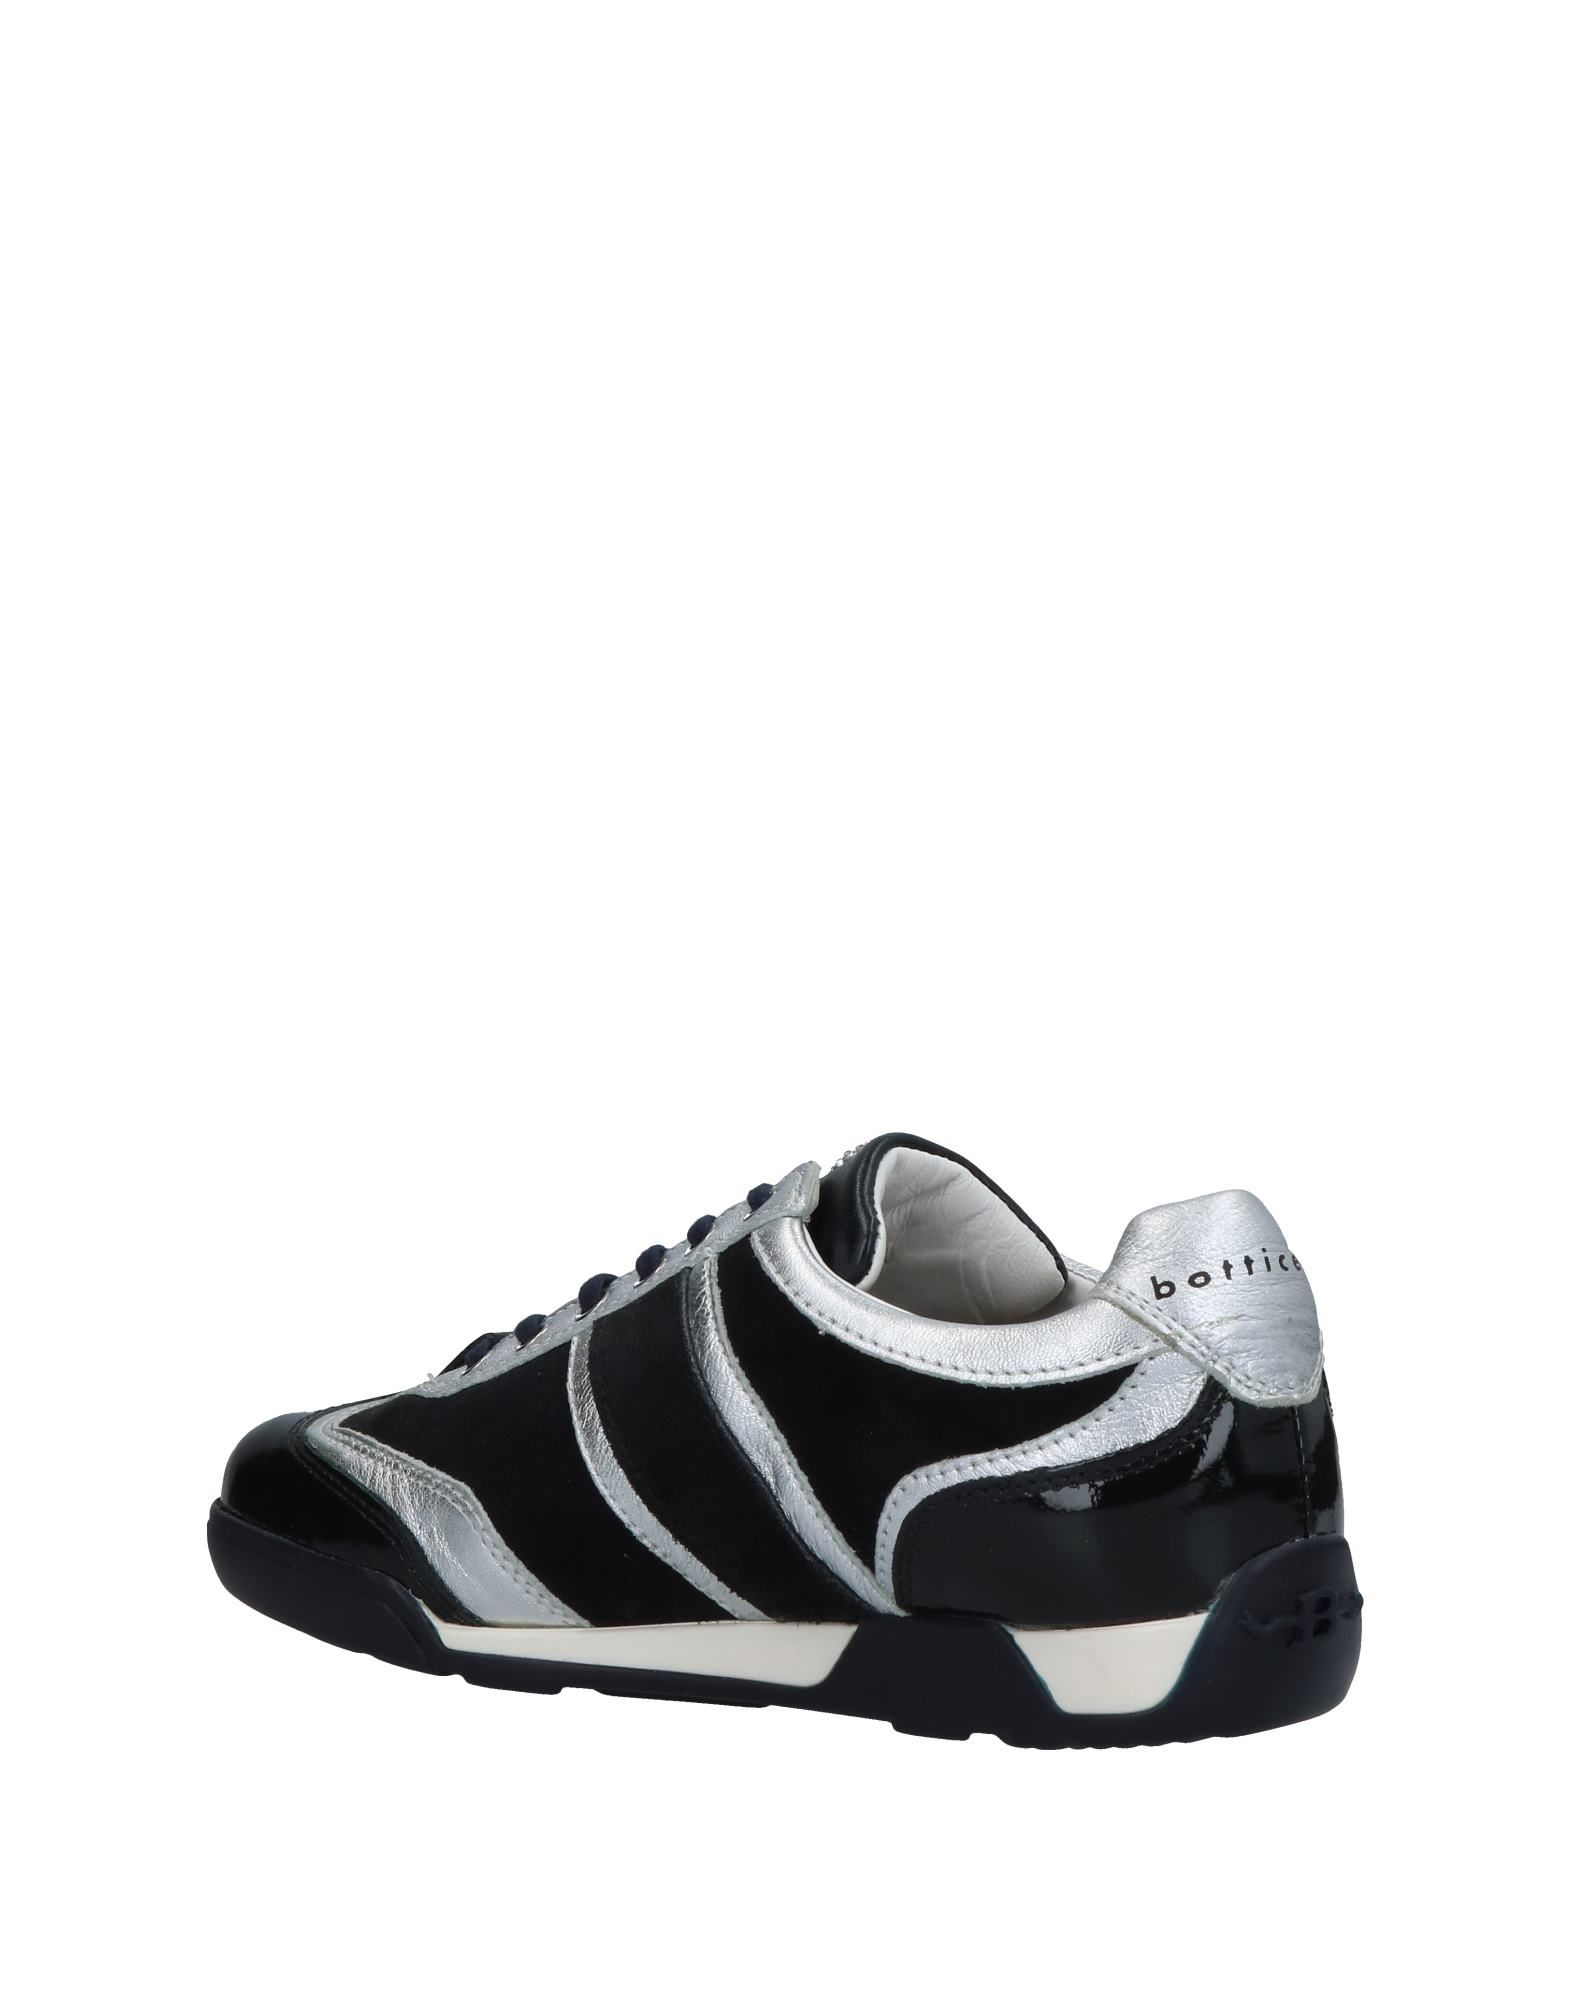 ... Sneakers Botticelli Limited Femme - Sneakers Botticelli Limited sur ...